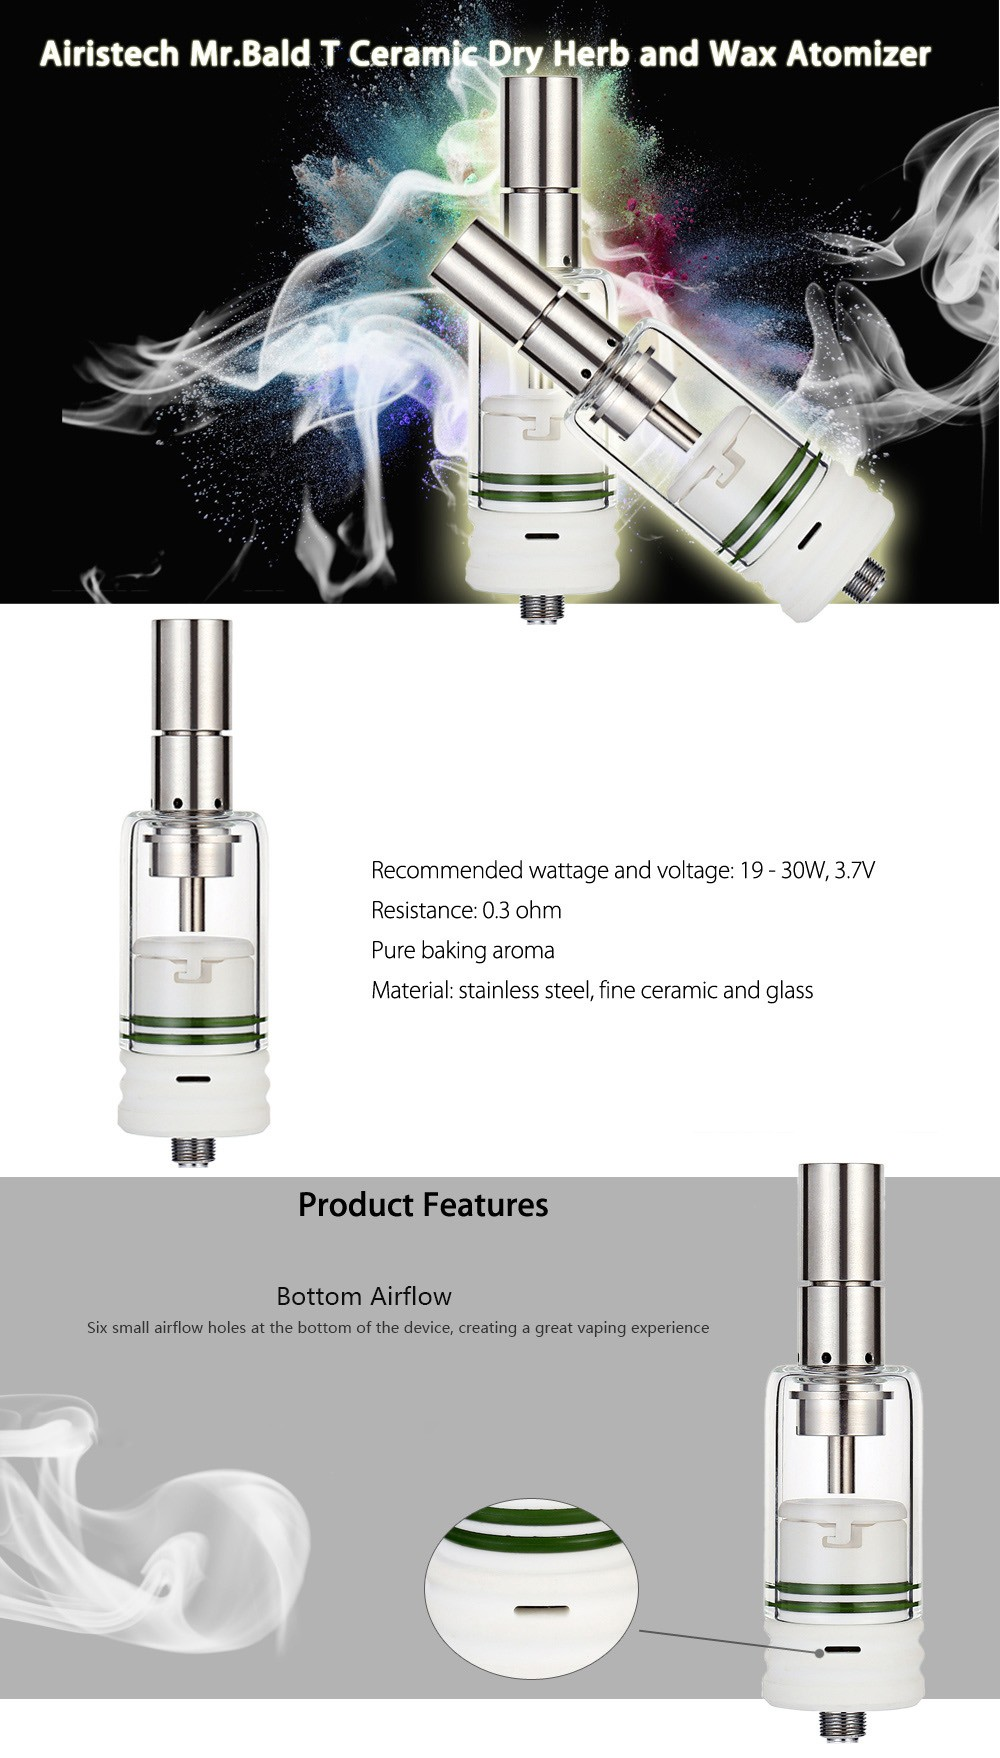 Original Airistech MrBald T Ceramic Dry Herb and Wax Atomizer with 0.3 ohm / 19 - 30W / 3.7V for E Cigarette